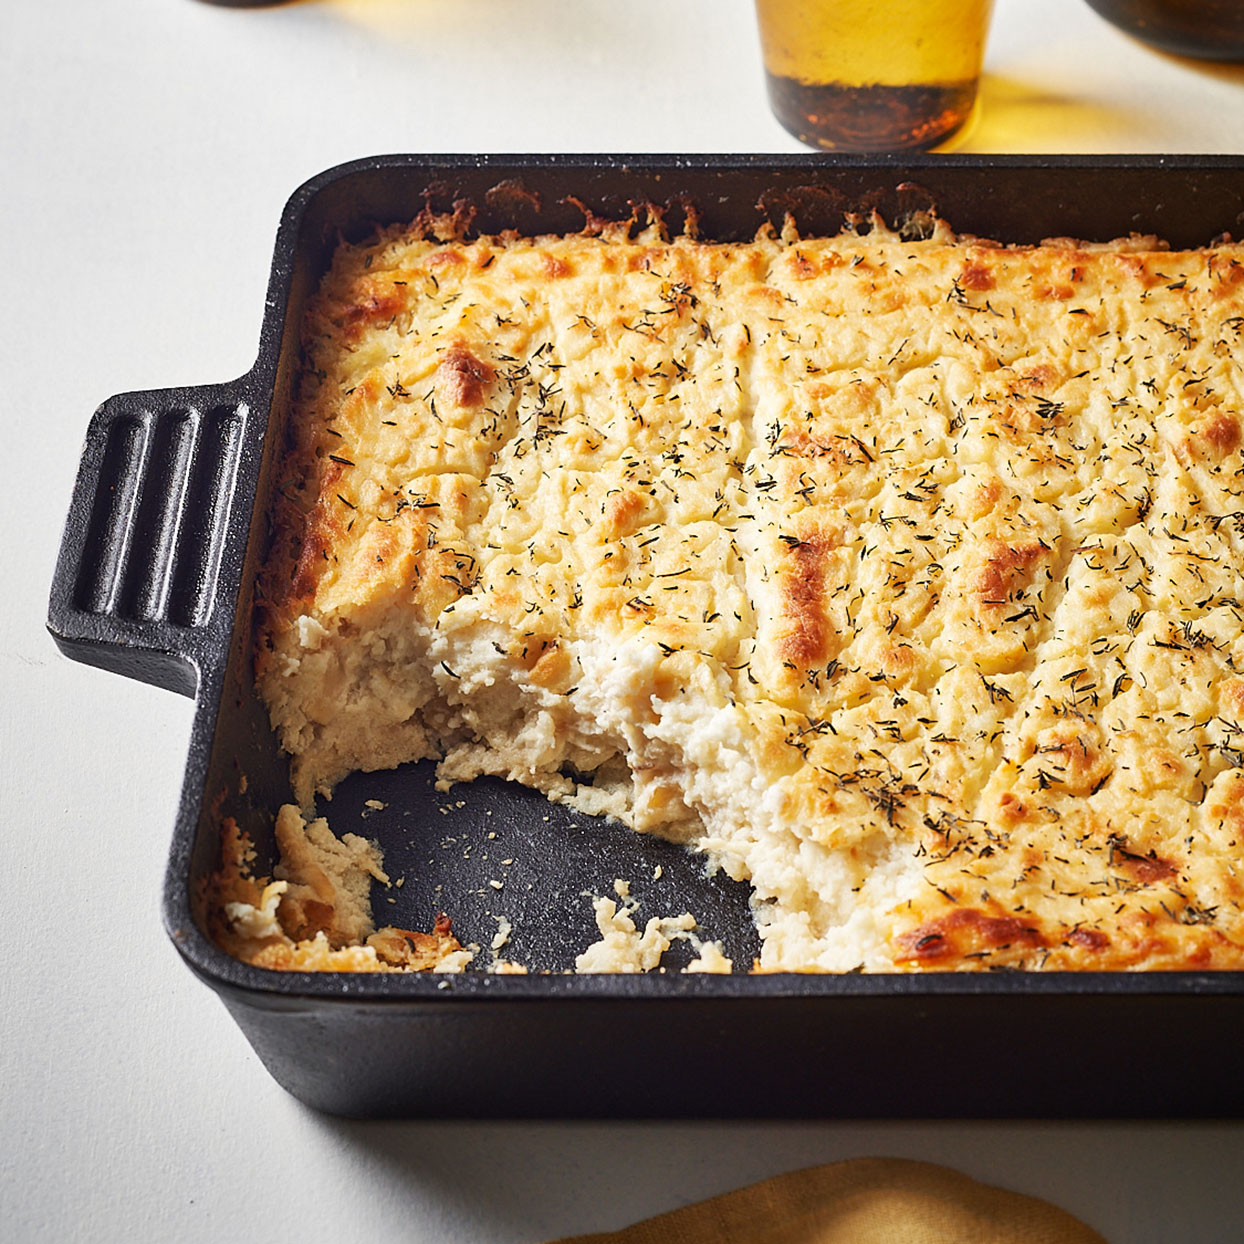 Mashed Potato & Roots Casserole